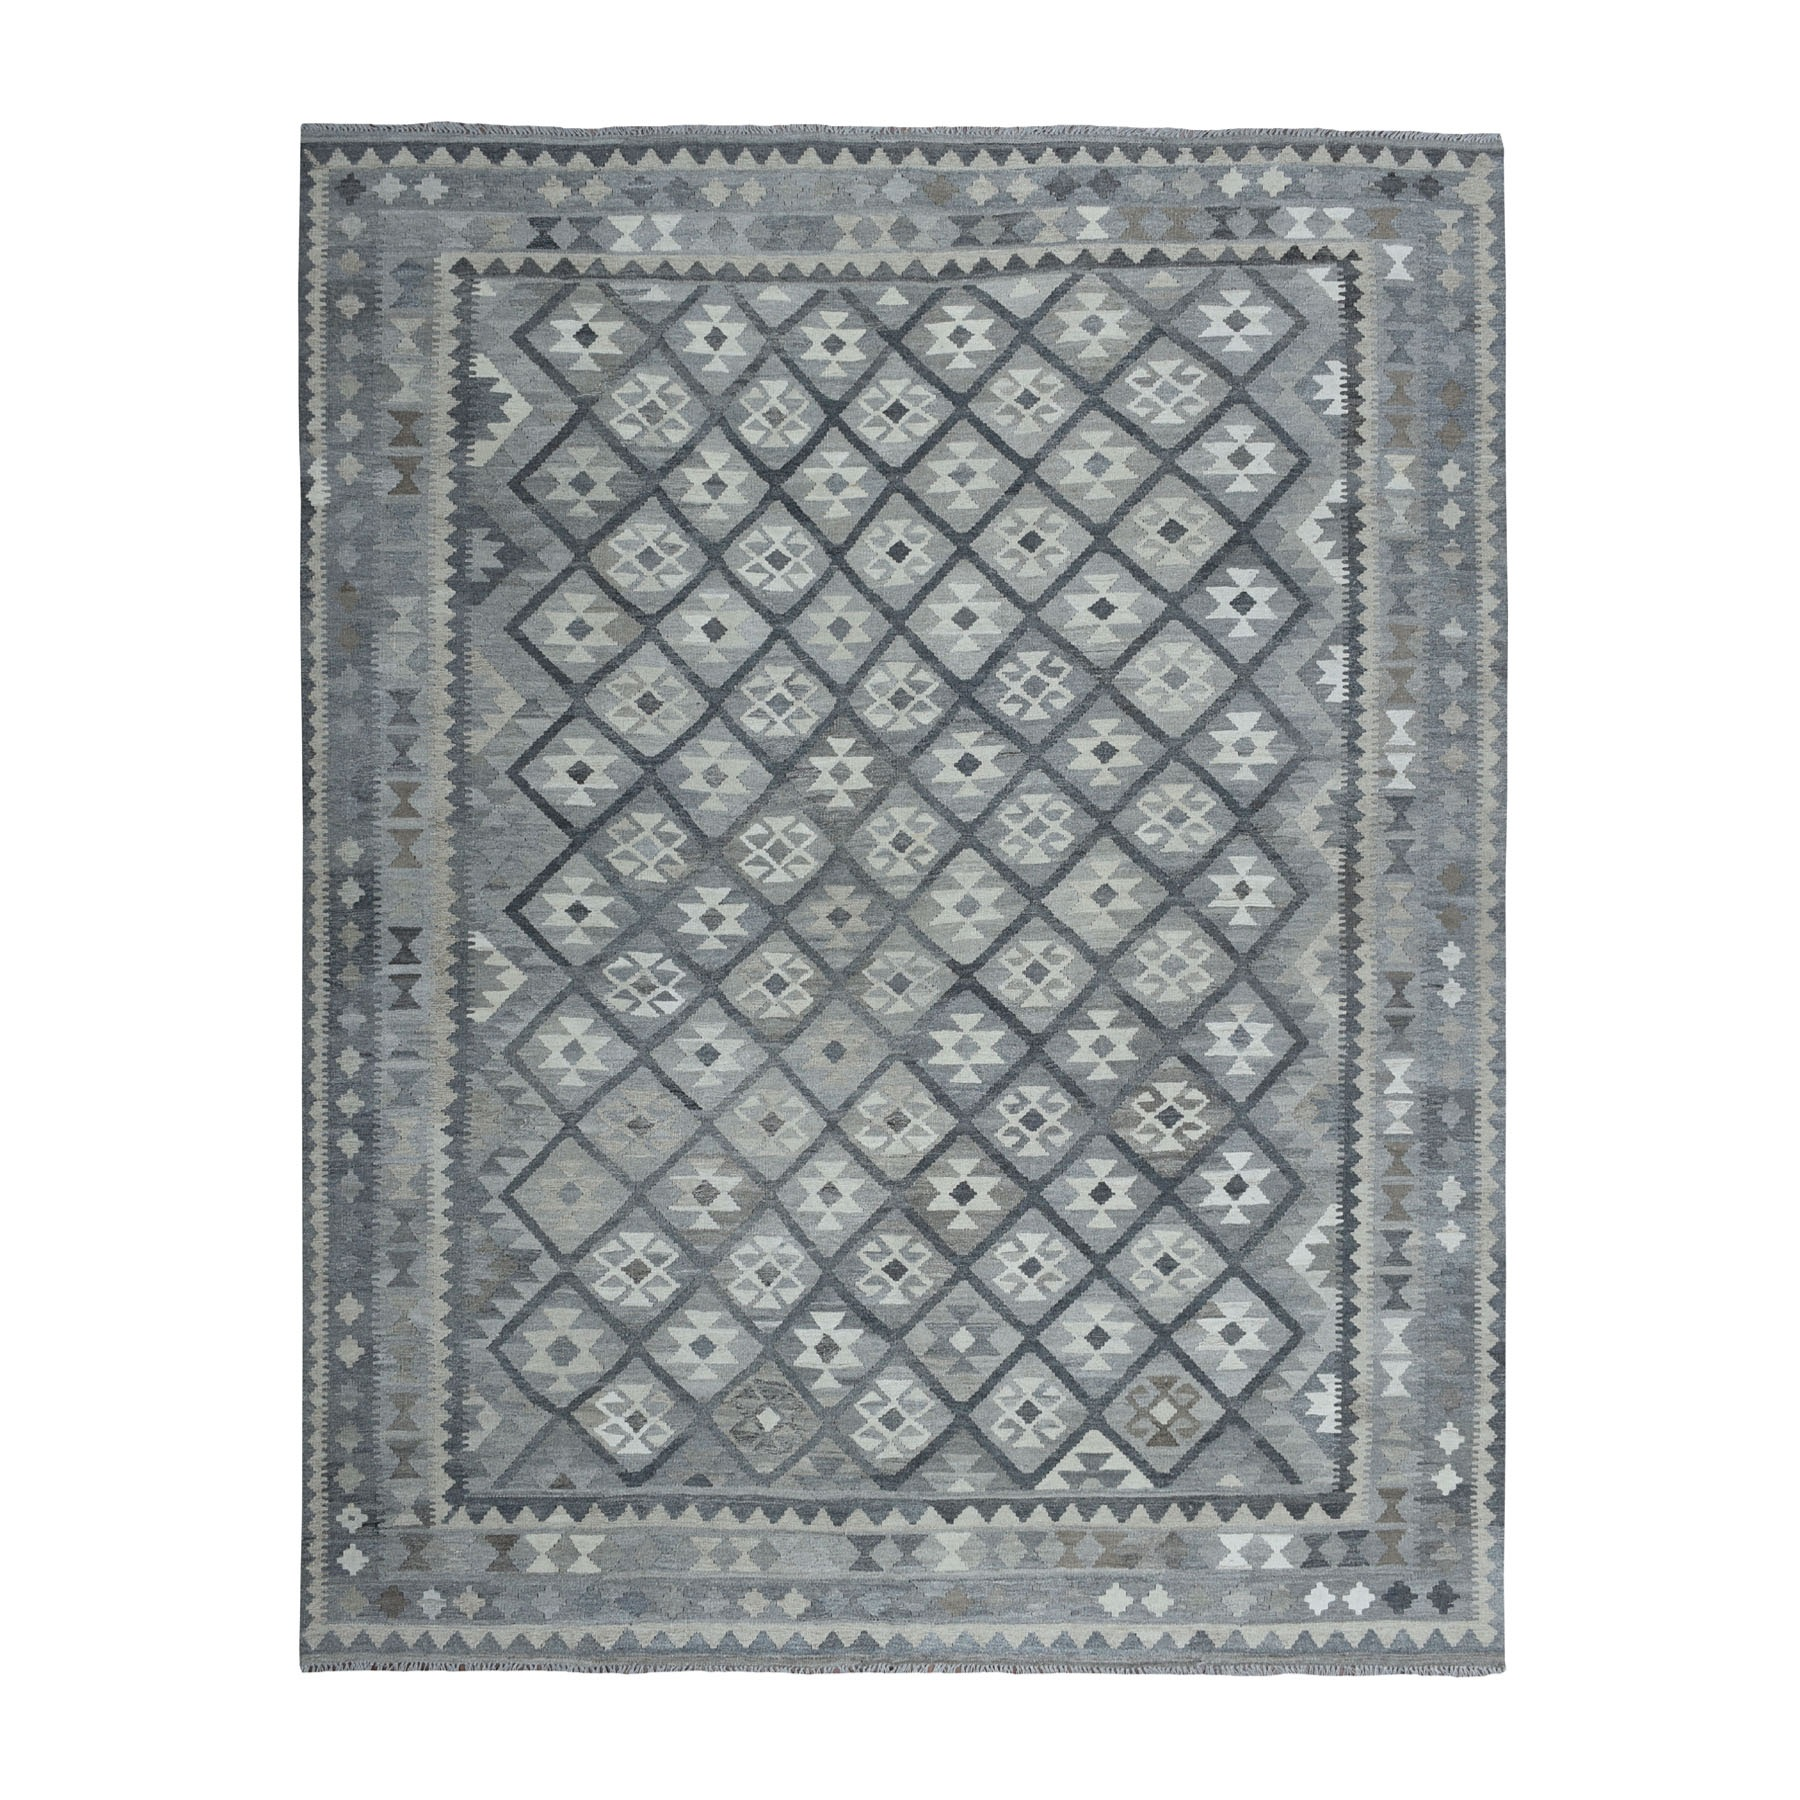 """8'2""""X9'8"""" Undyed Natural Wool Afghan Kilim Reversible Hand Woven Oriental Rug moaeb969"""